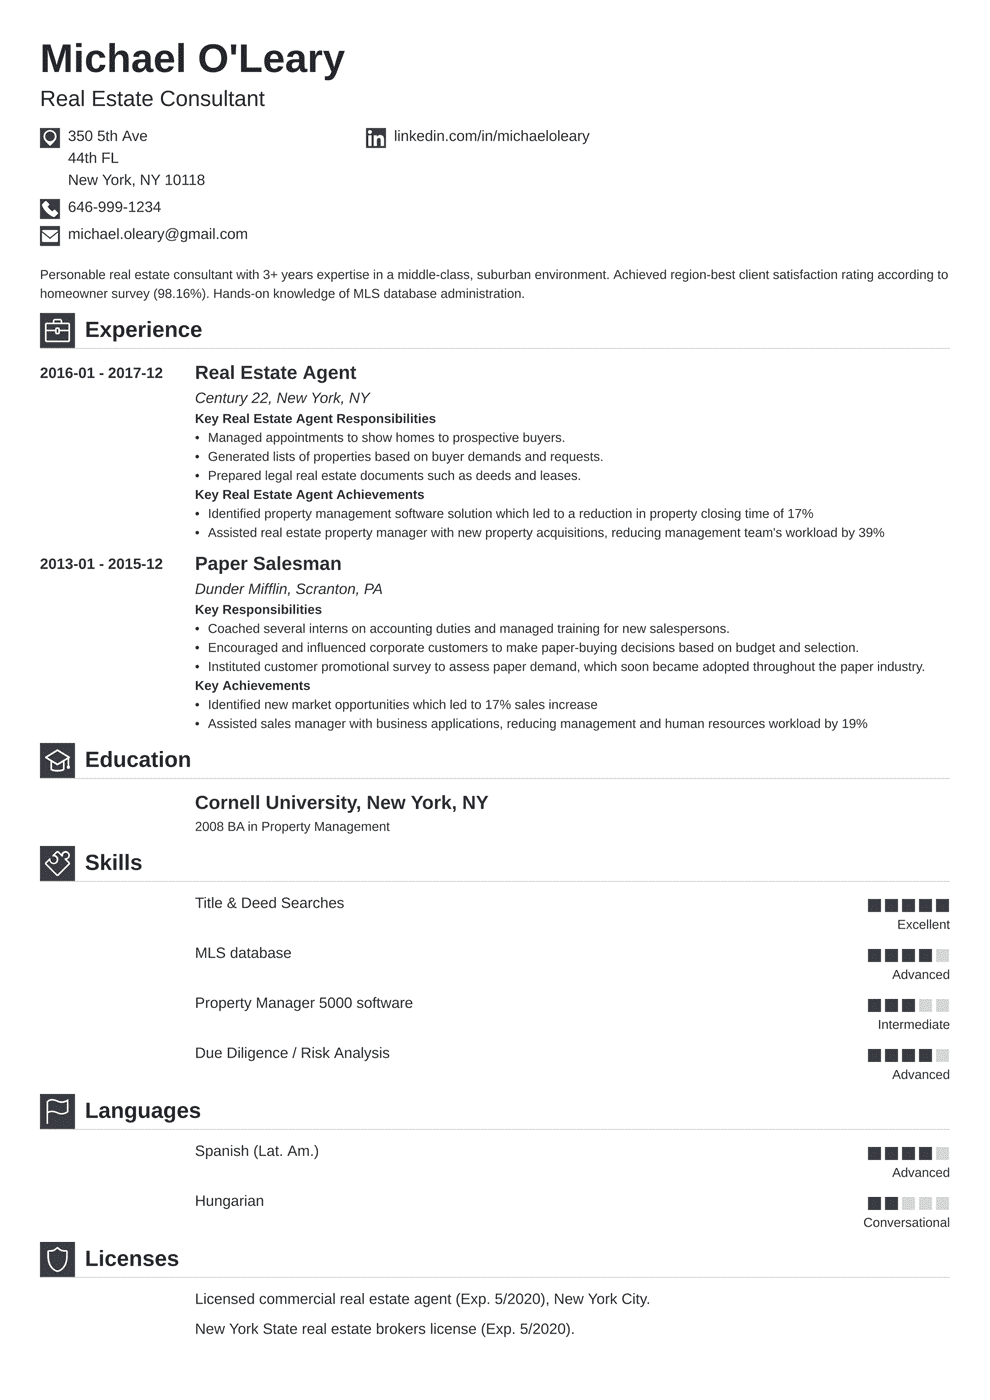 Real Estate Resume | Real Estate Resume Sample Complete Guide 20 Examples